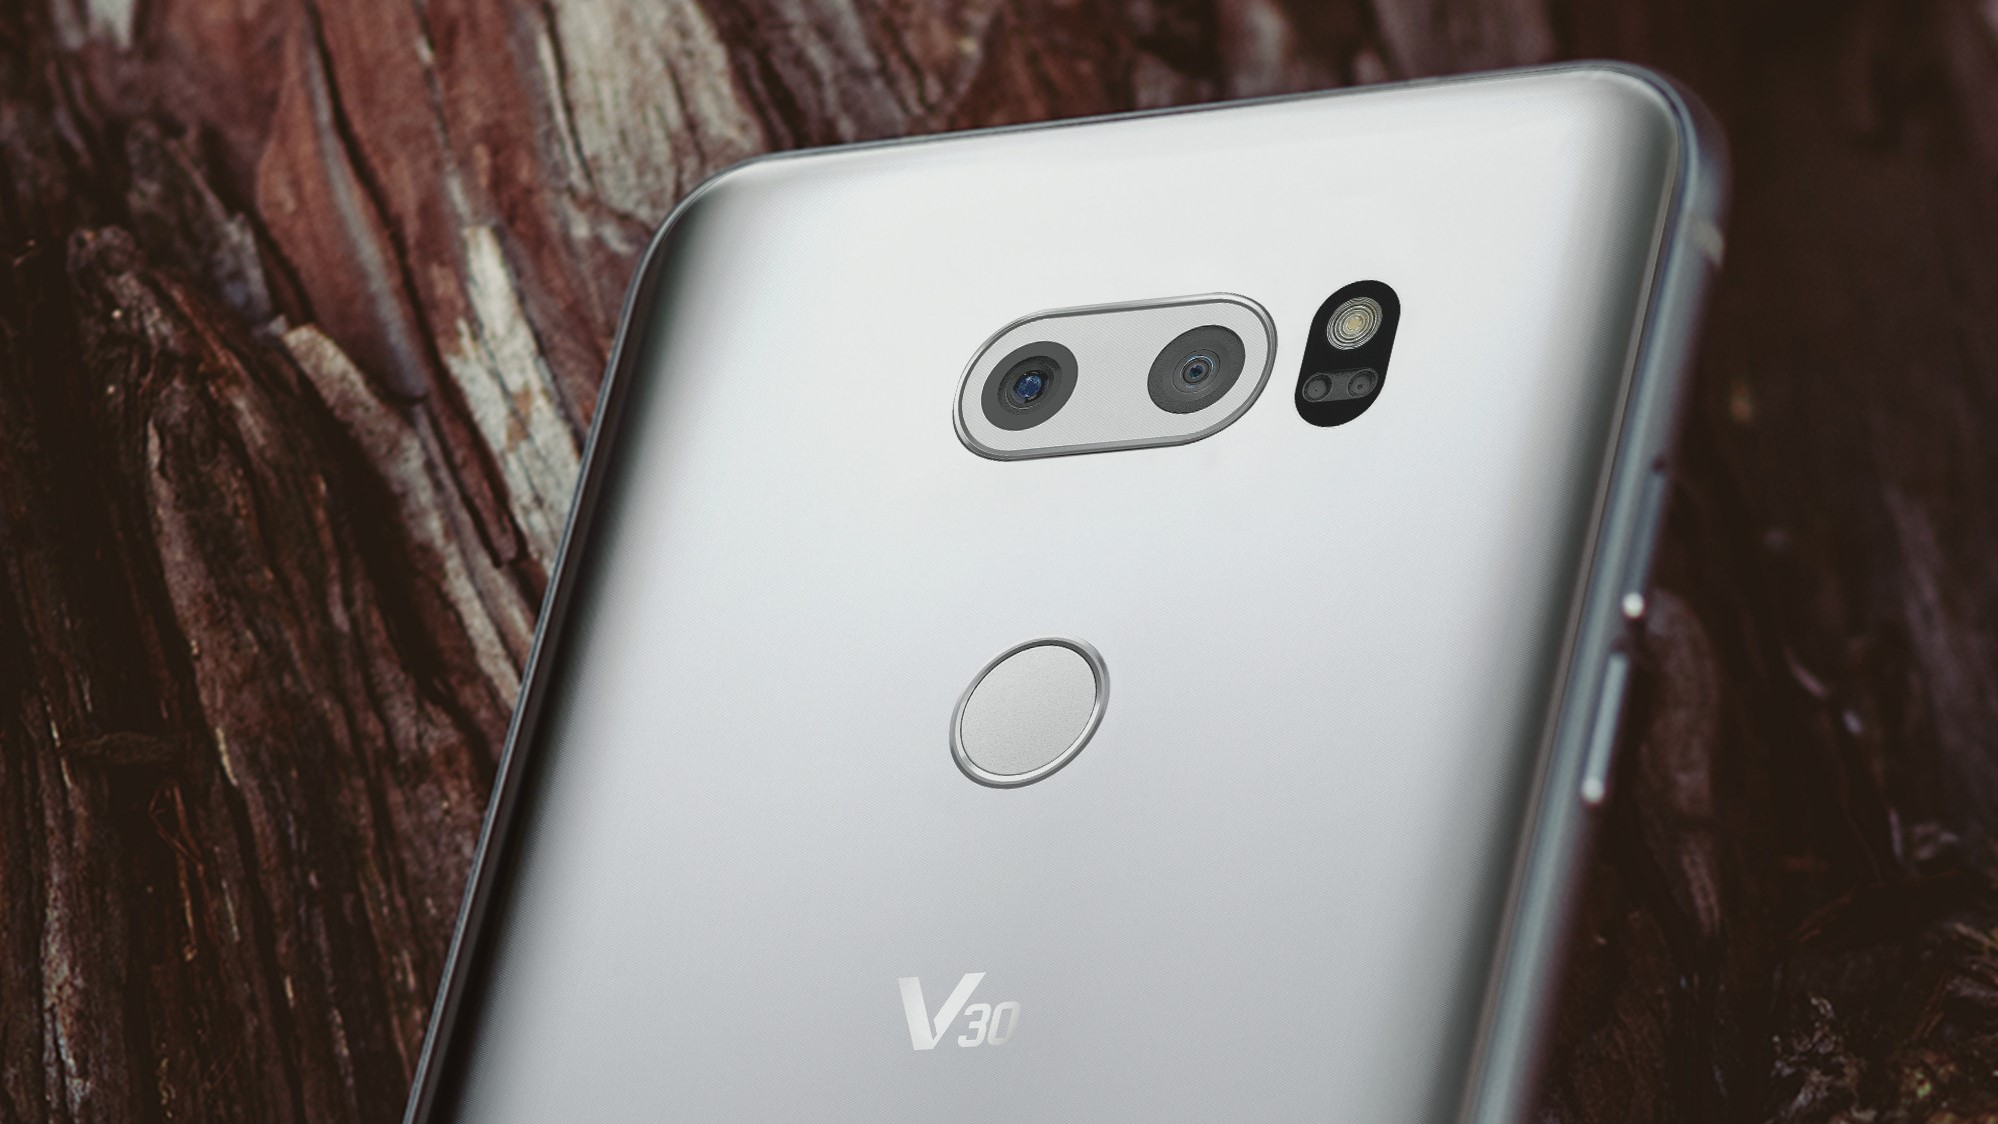 Unofficial Google Camera port now works on LG phones with